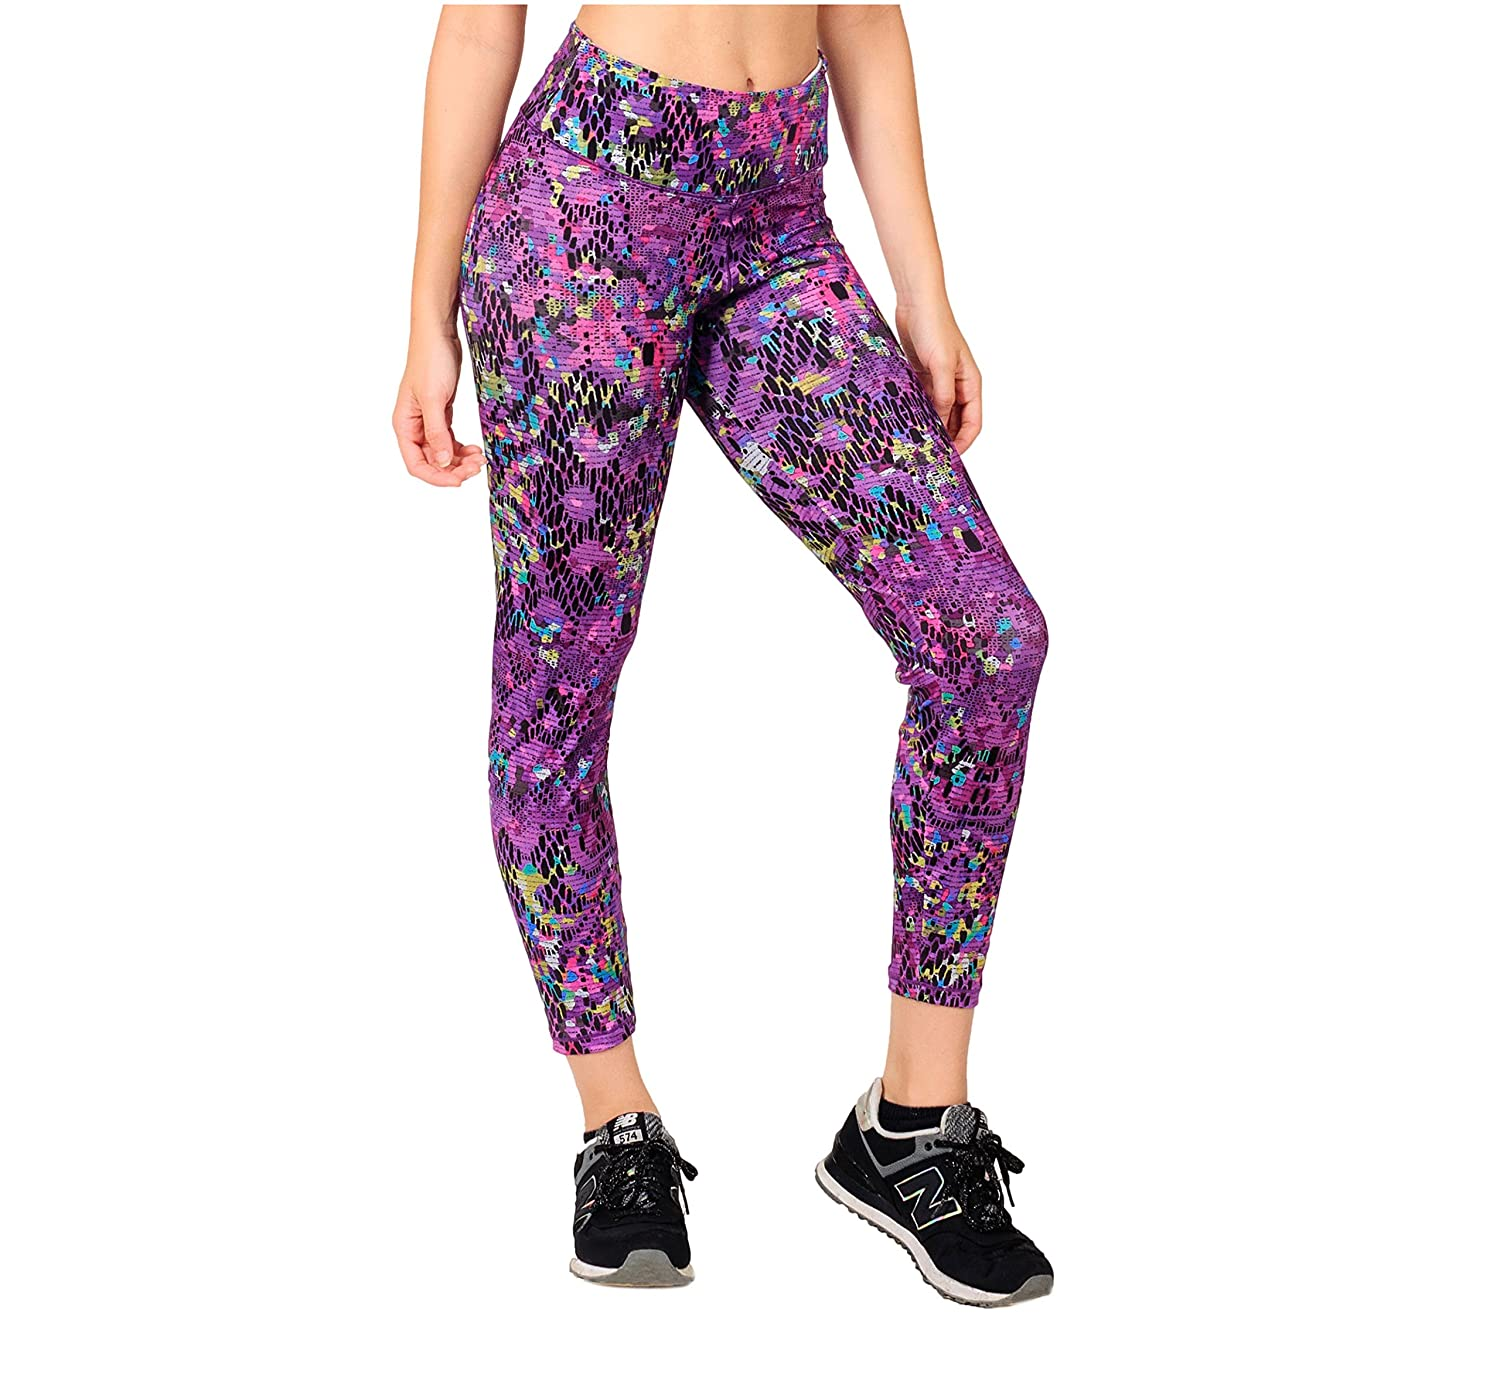 2922d98ba1cf7 PREMIUM HIGH QUALITY: ActiveFit yoga high waisted workout pants for women  are high quality athleisure and sportswear. These leggings are great to  conquer ...